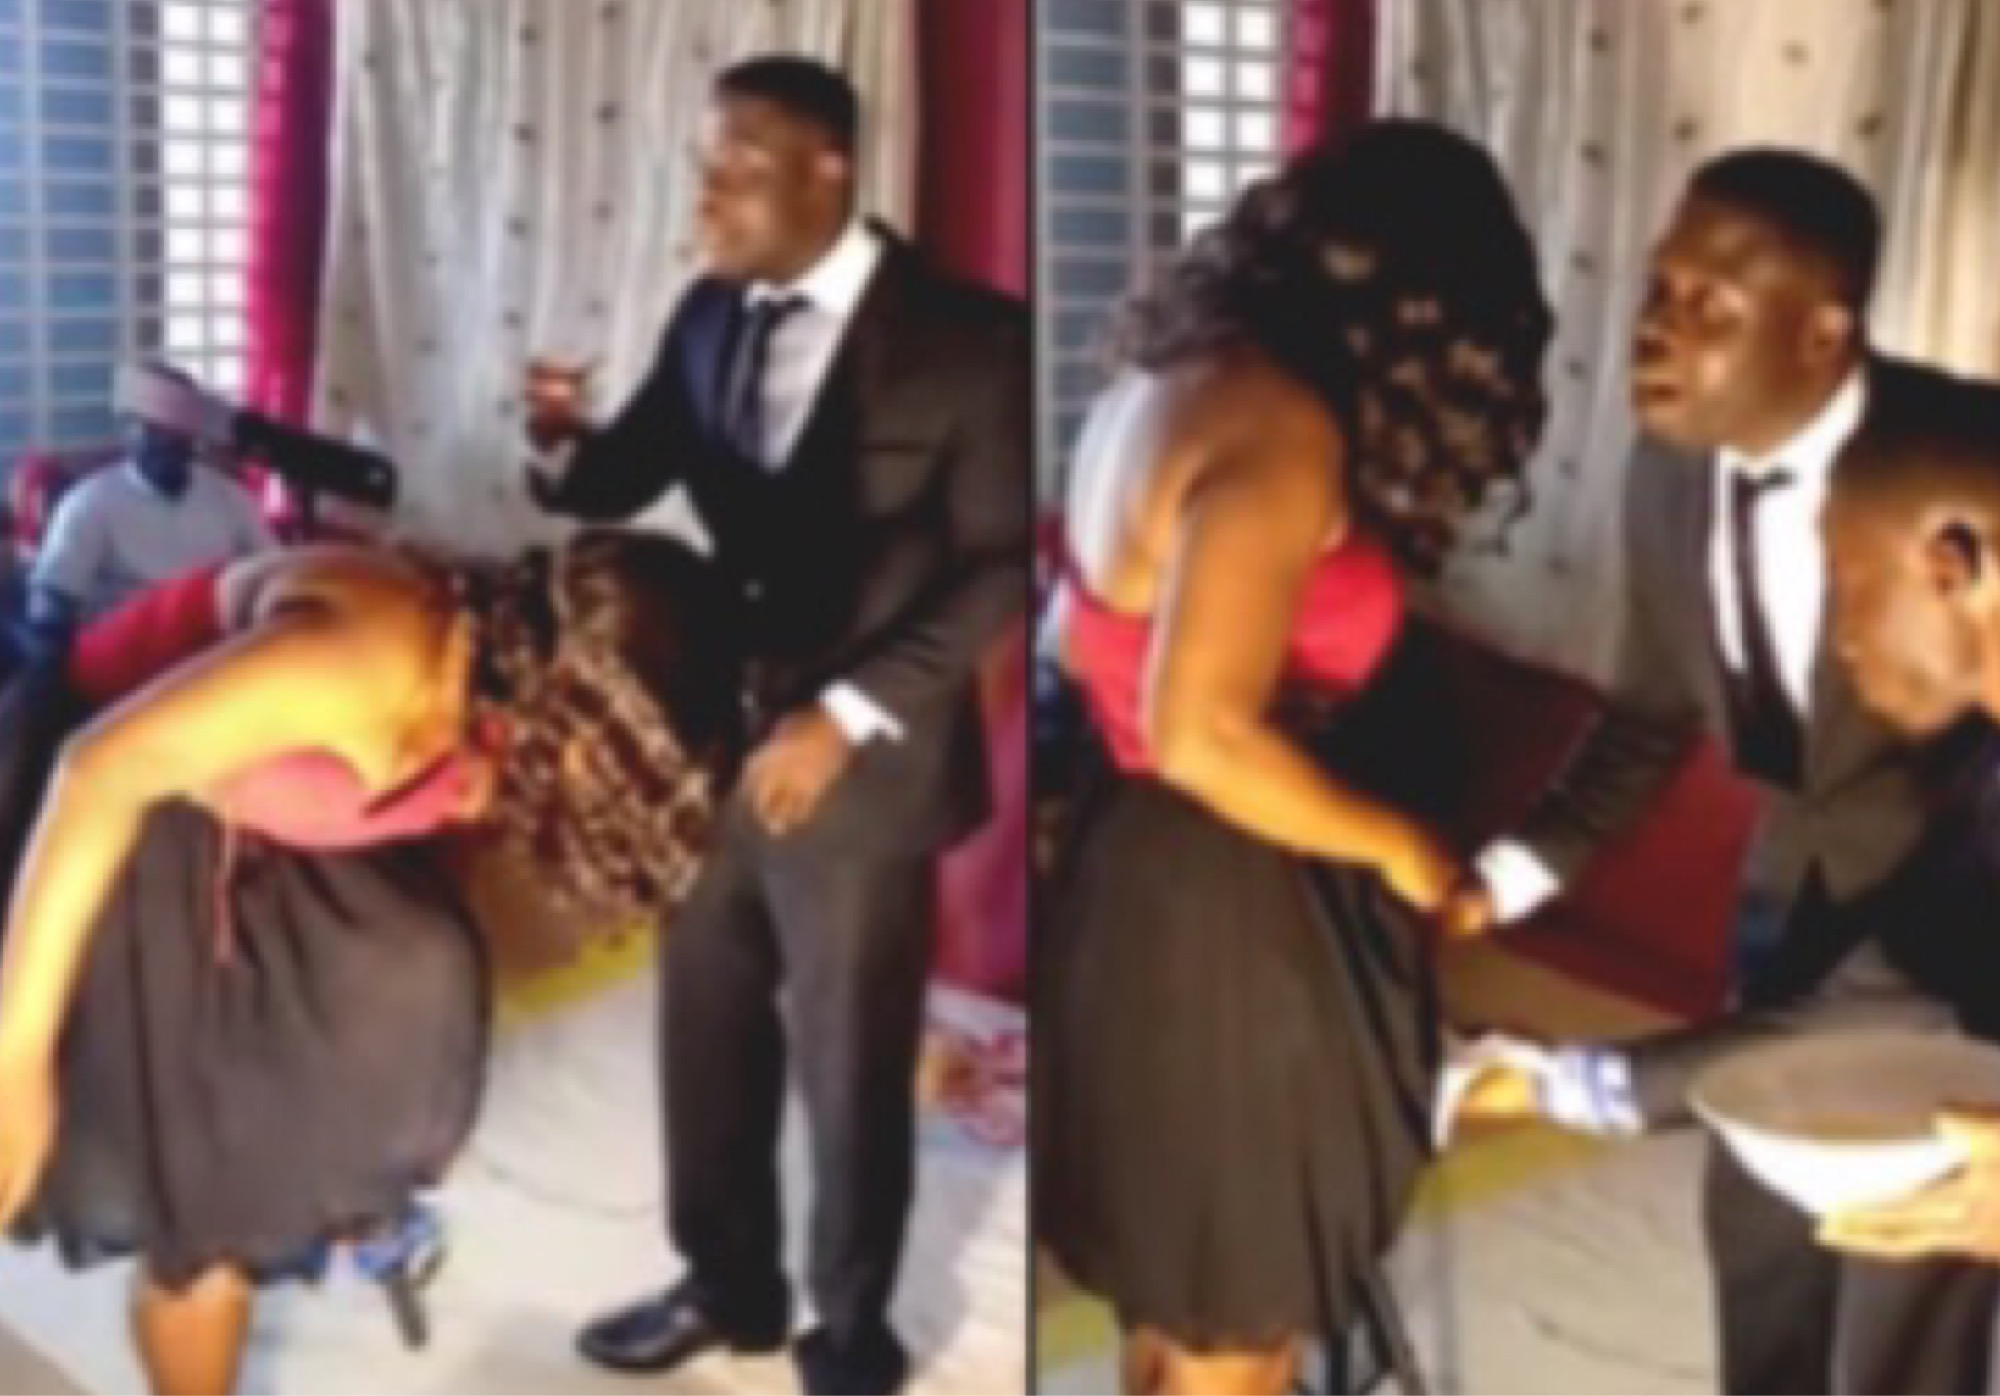 Popular Ghanaian Pastor Shaves Pubic Hair Of Female Members In Church For Deliverance (Video)